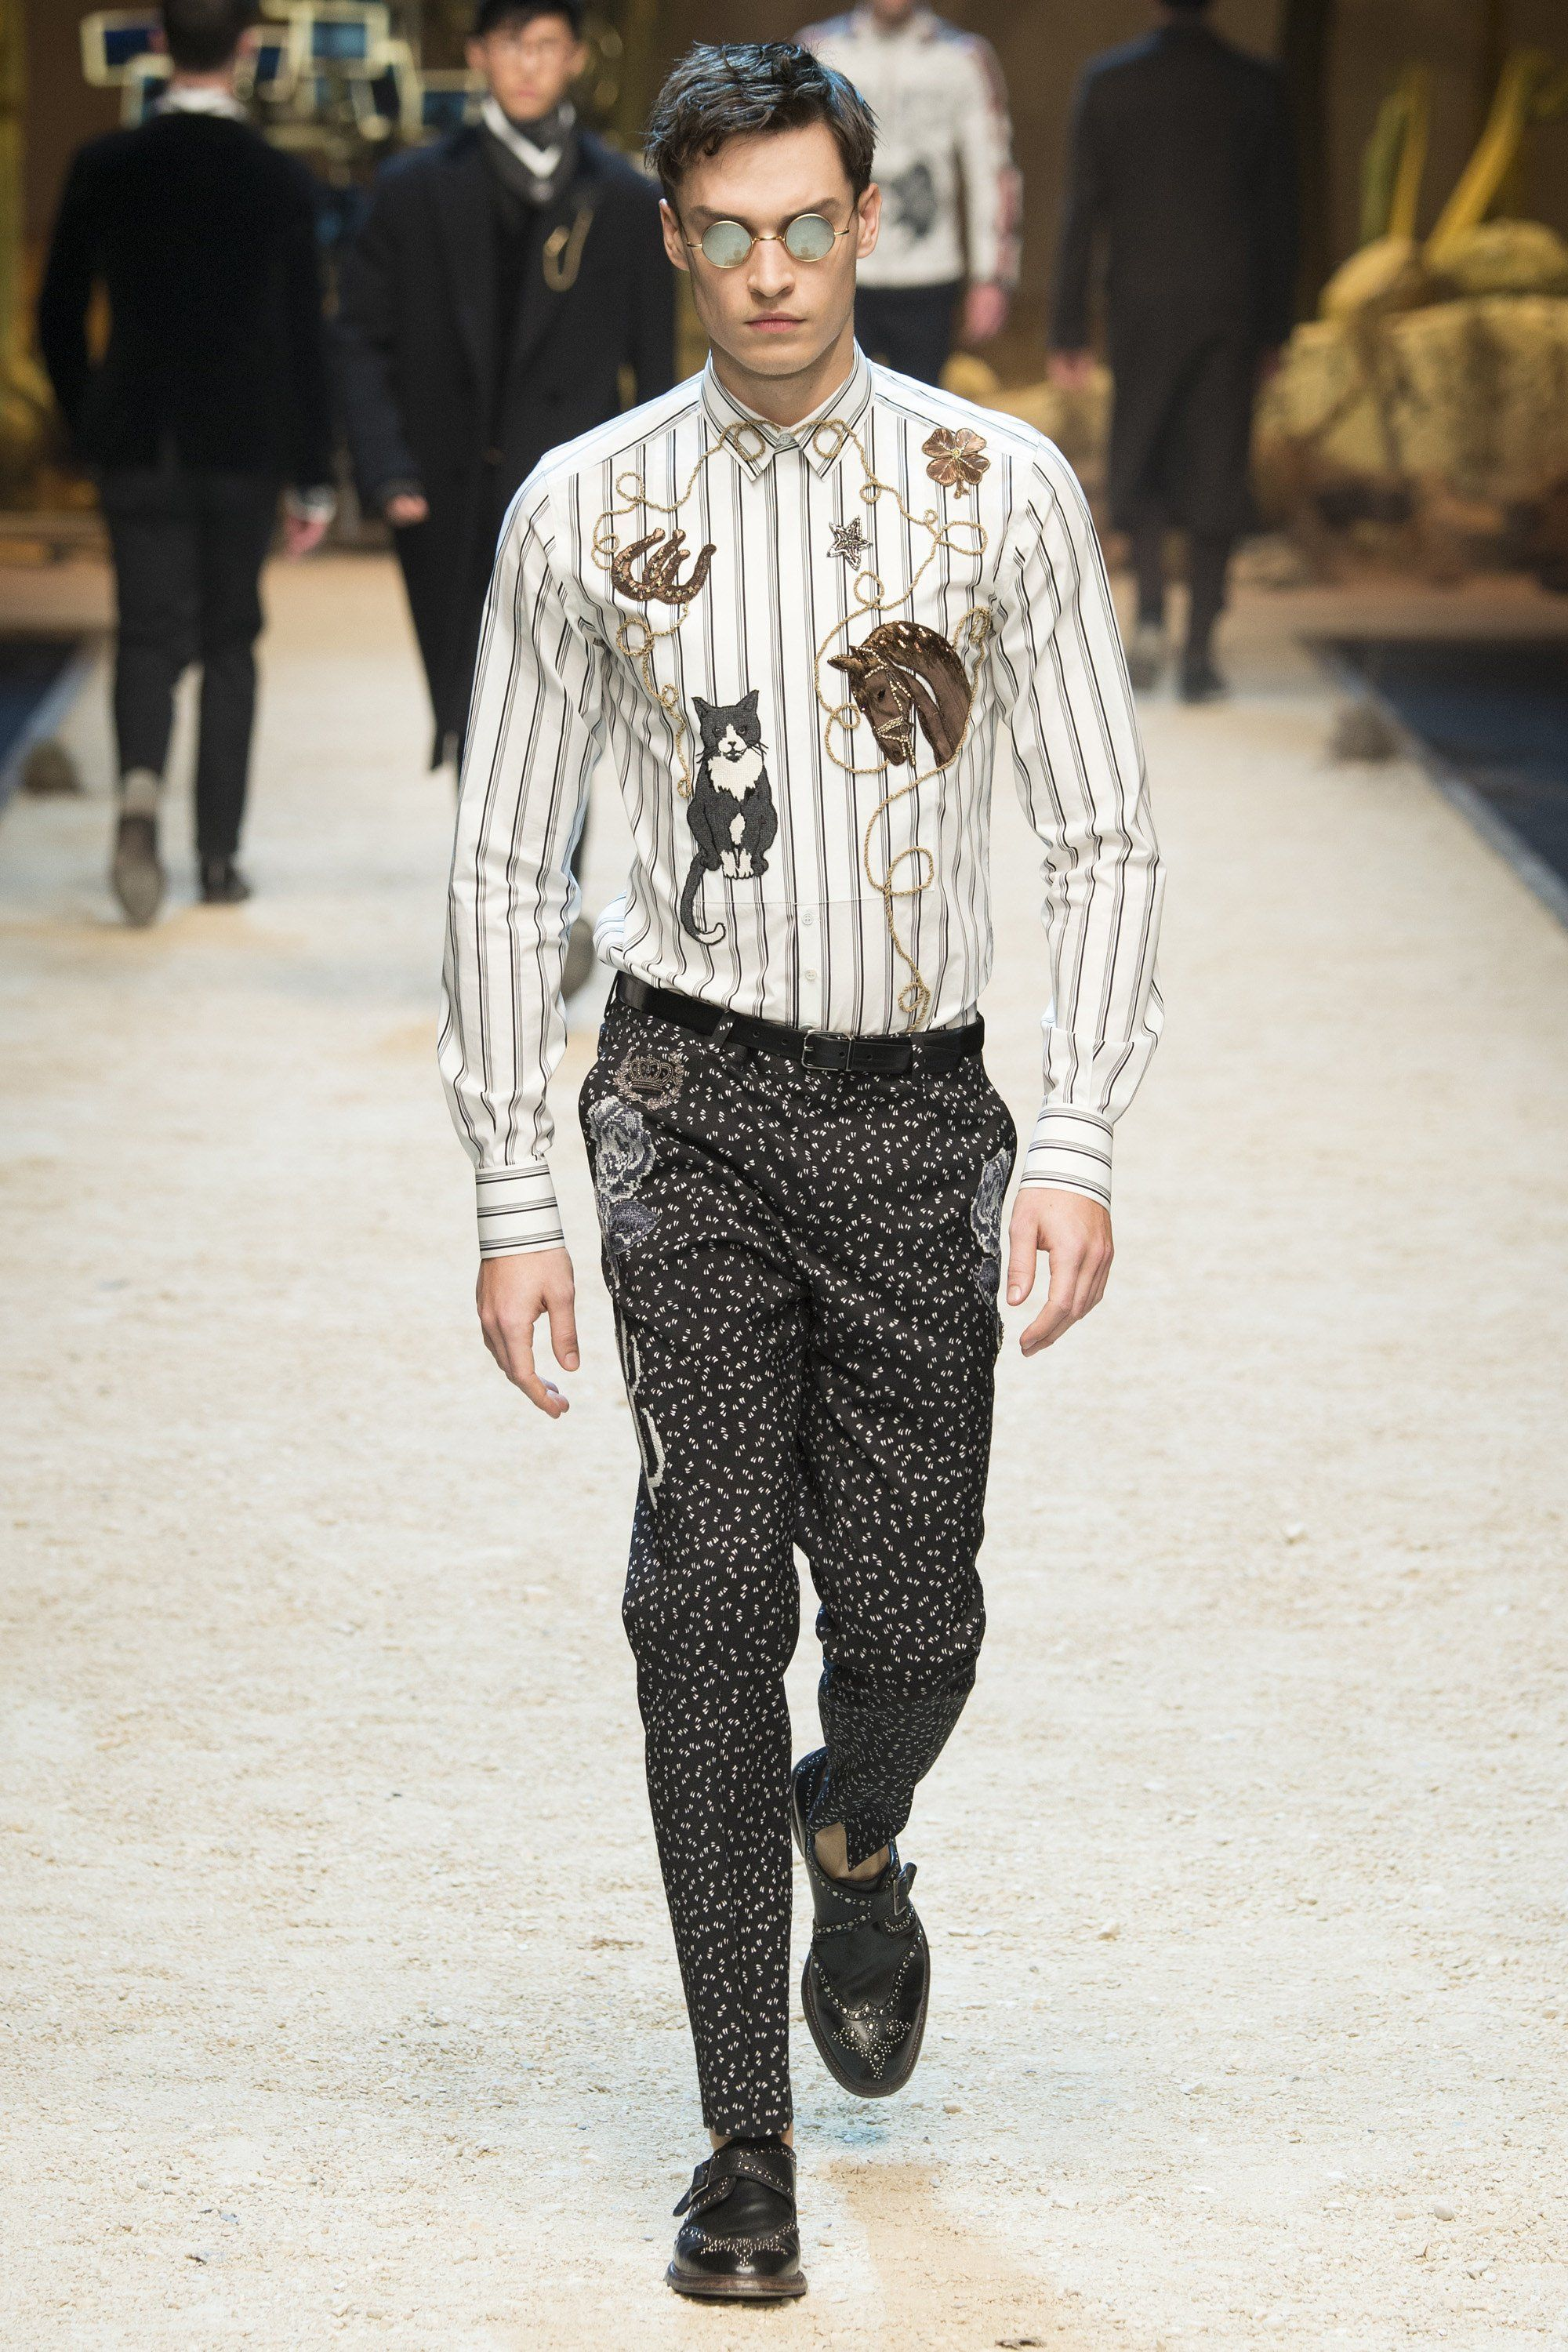 Who's going to be the first to rock this Dolce & Gabbana look under a Grand Prix VIP tent?